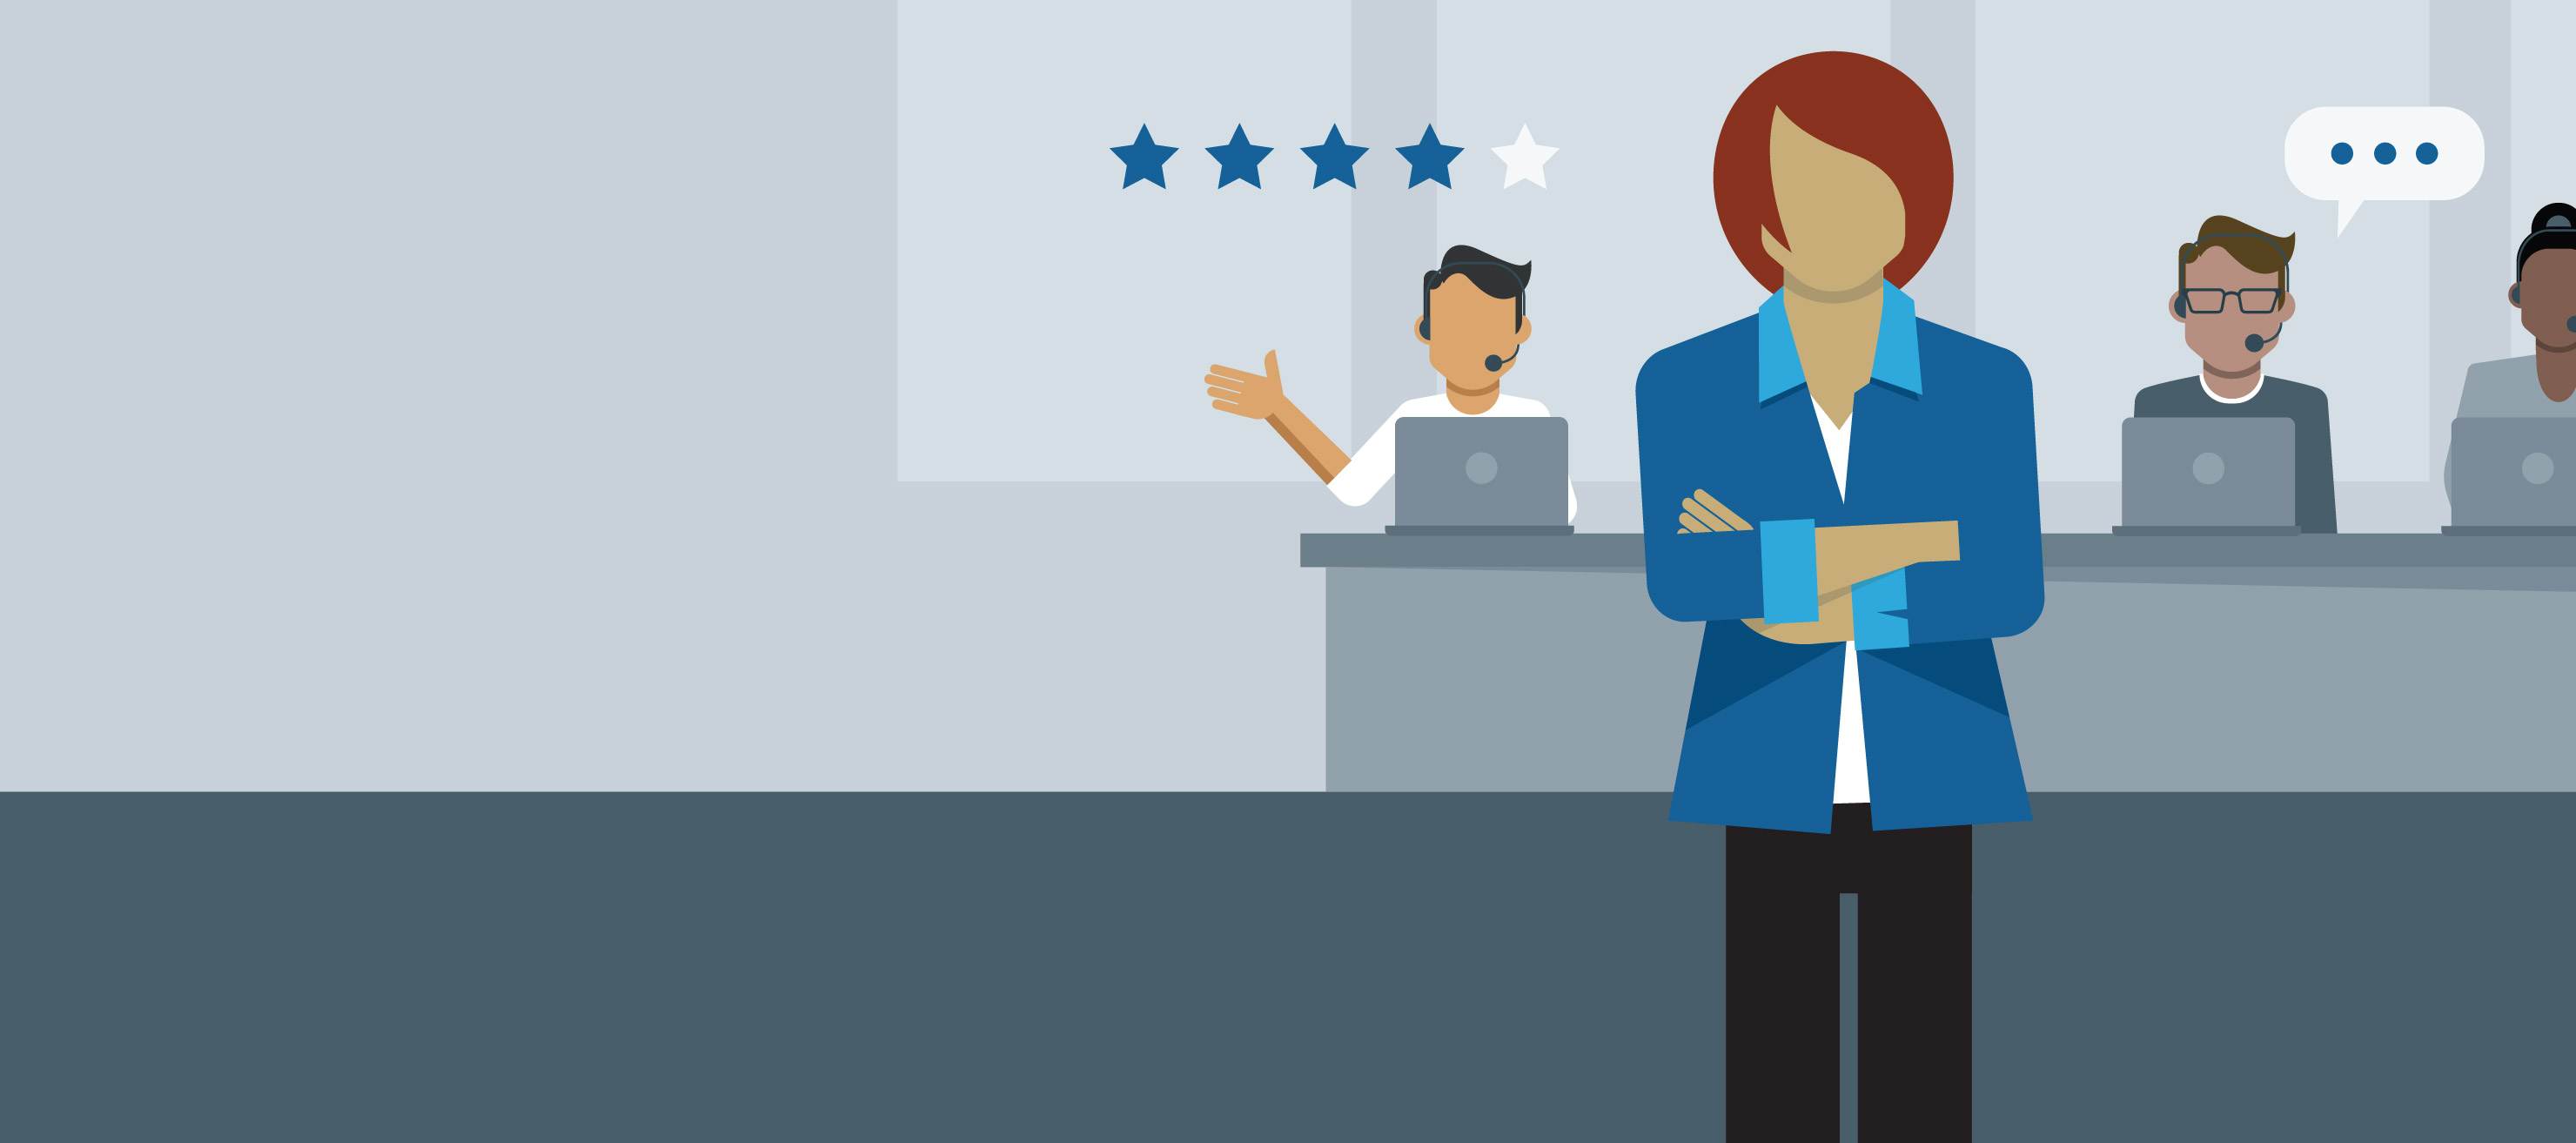 hero image for Learning Path: Become a Customer Service Manager